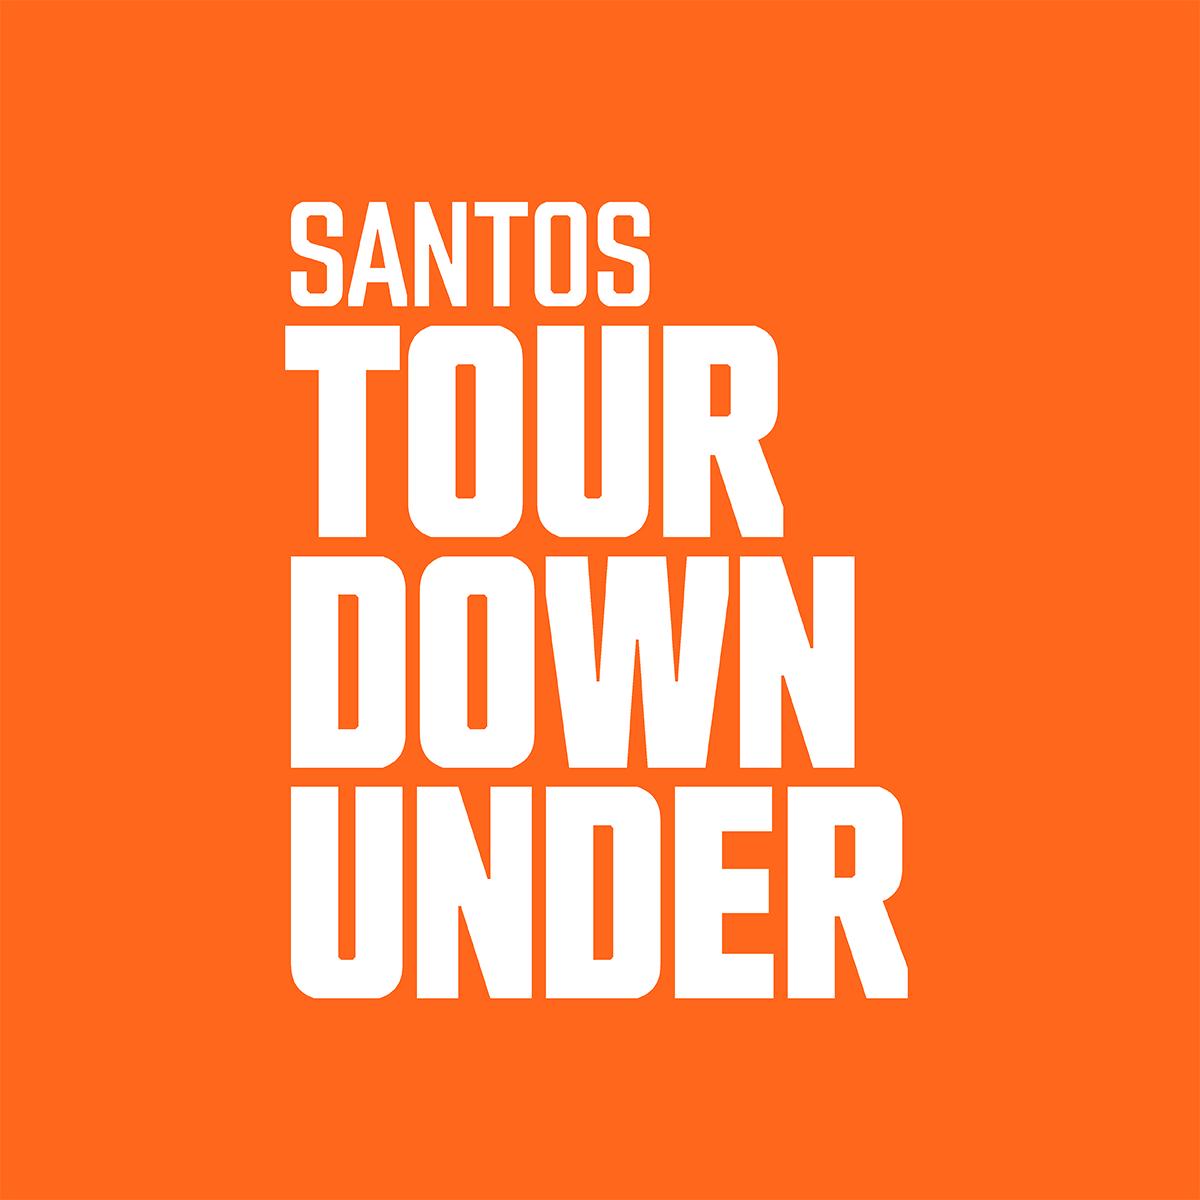 Santos Women's Tour Down Under